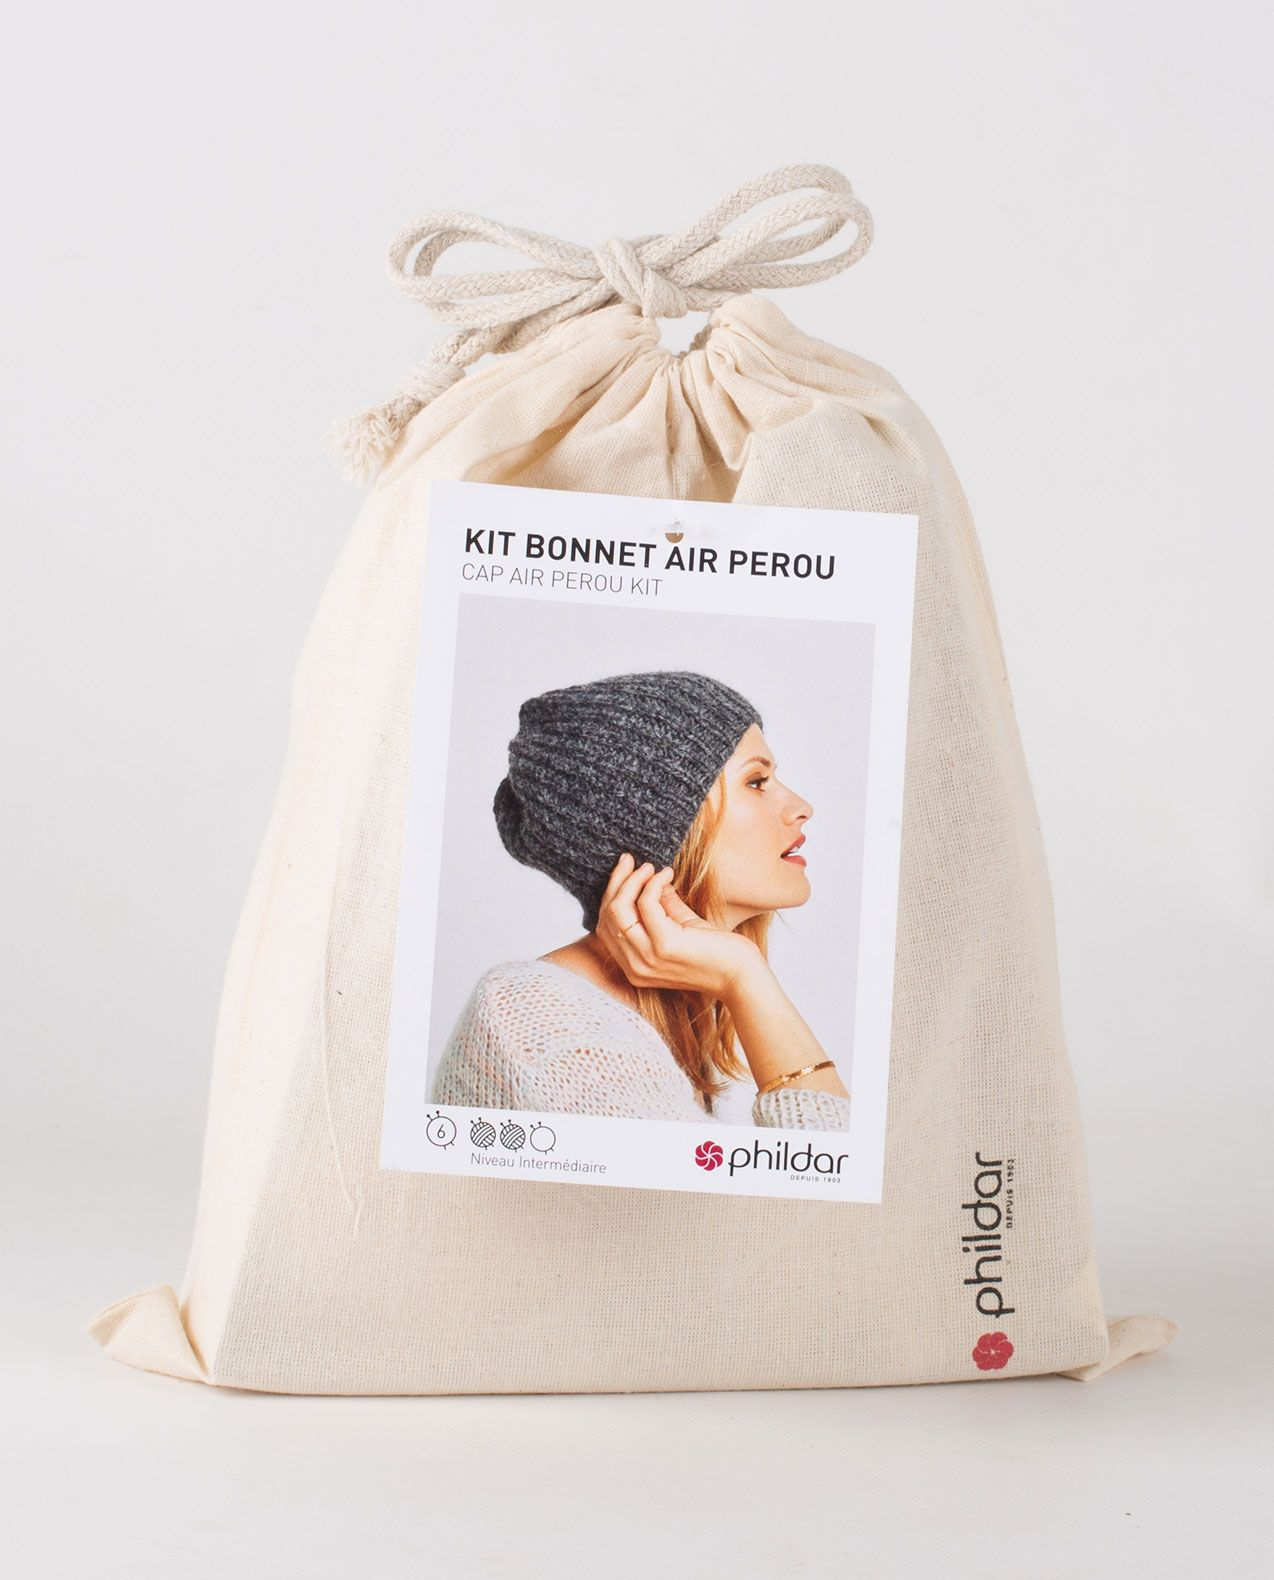 Kit diy - bonnet phil air perou